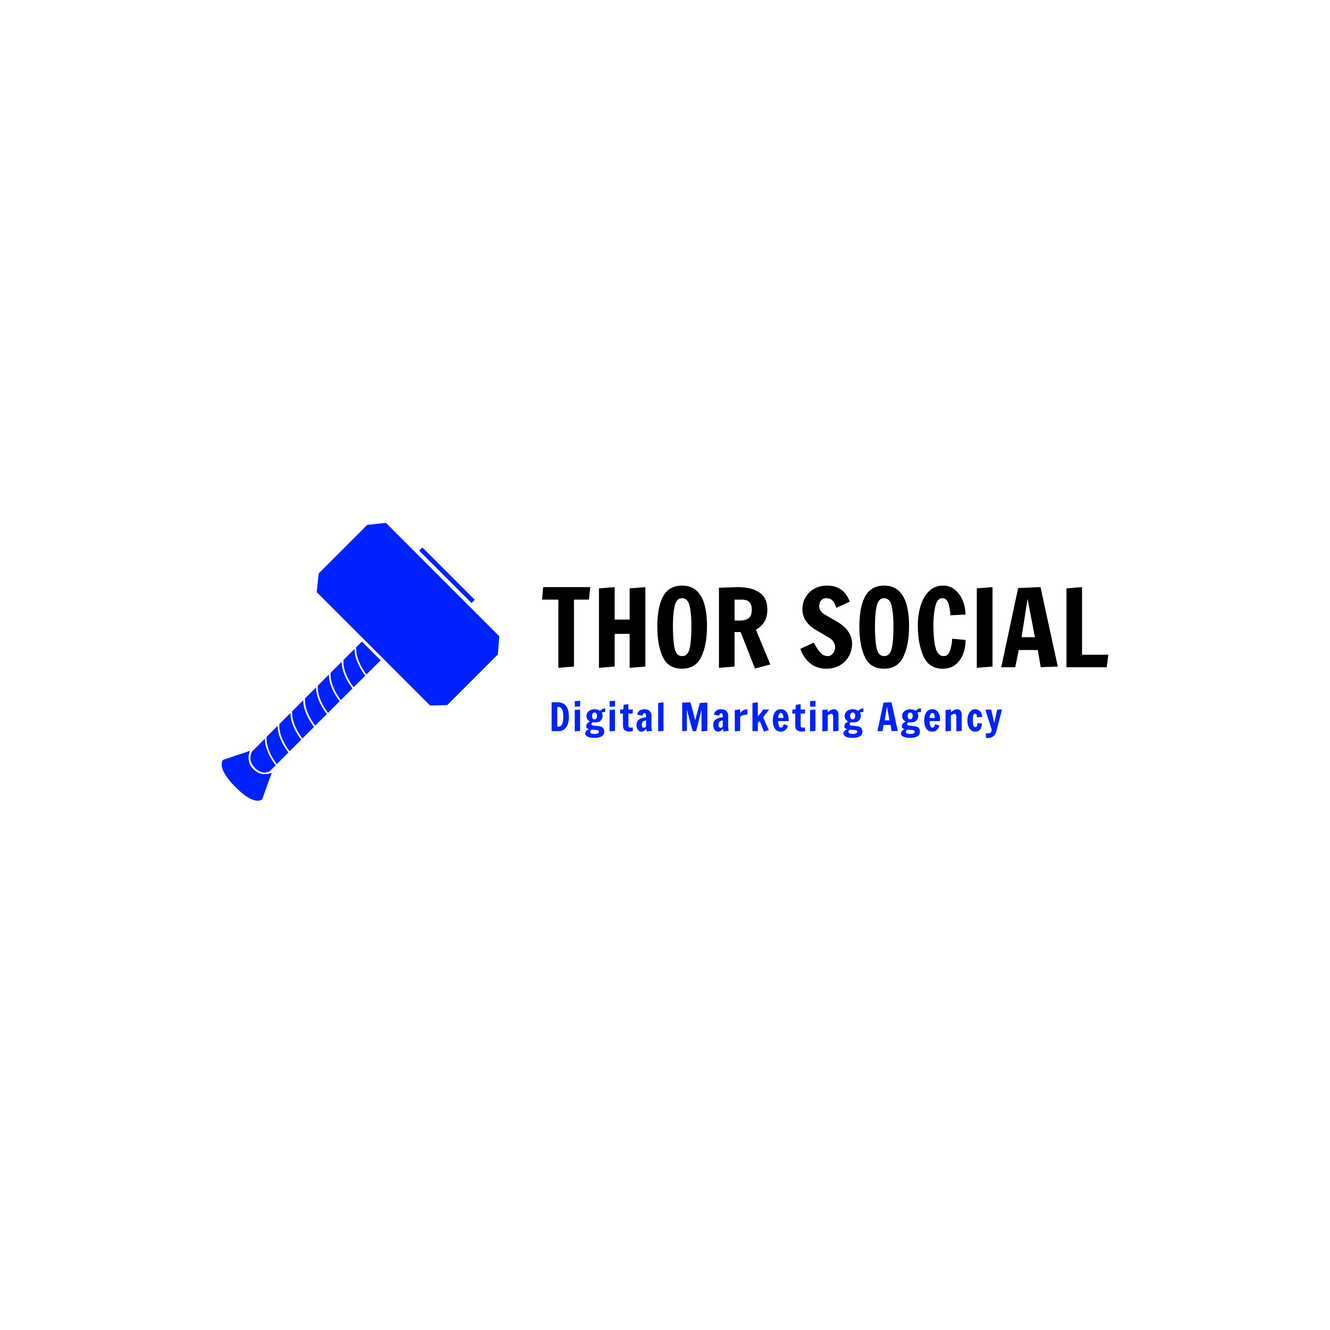 Marketing Agencies in Boston - Thor Social